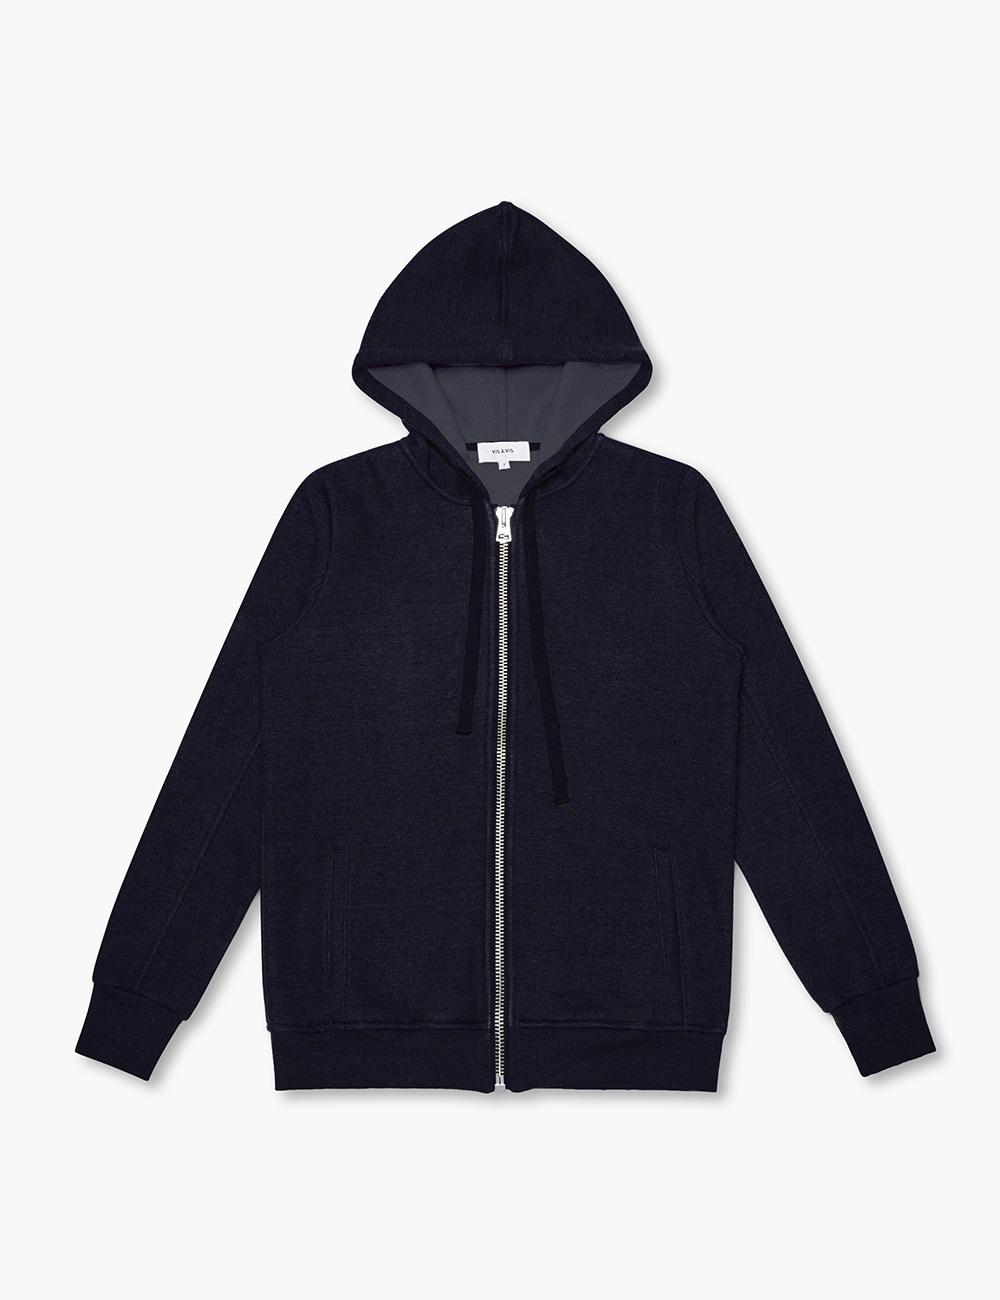 FLEECE HOODY (NAVY)